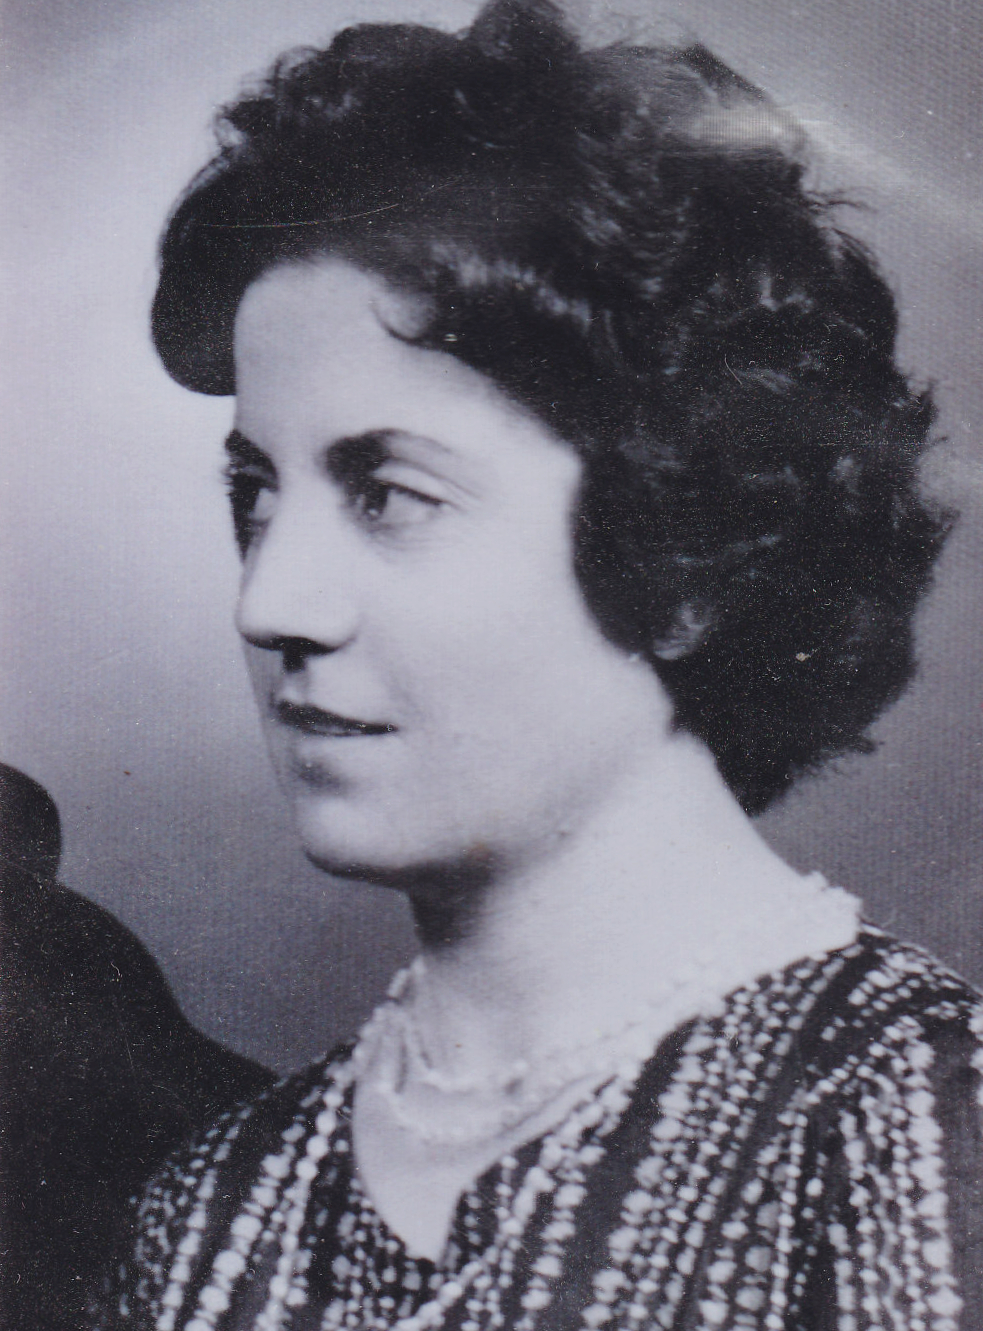 A black and white photo of a woman in profile for a story on Peter Papathanasiou's family history.